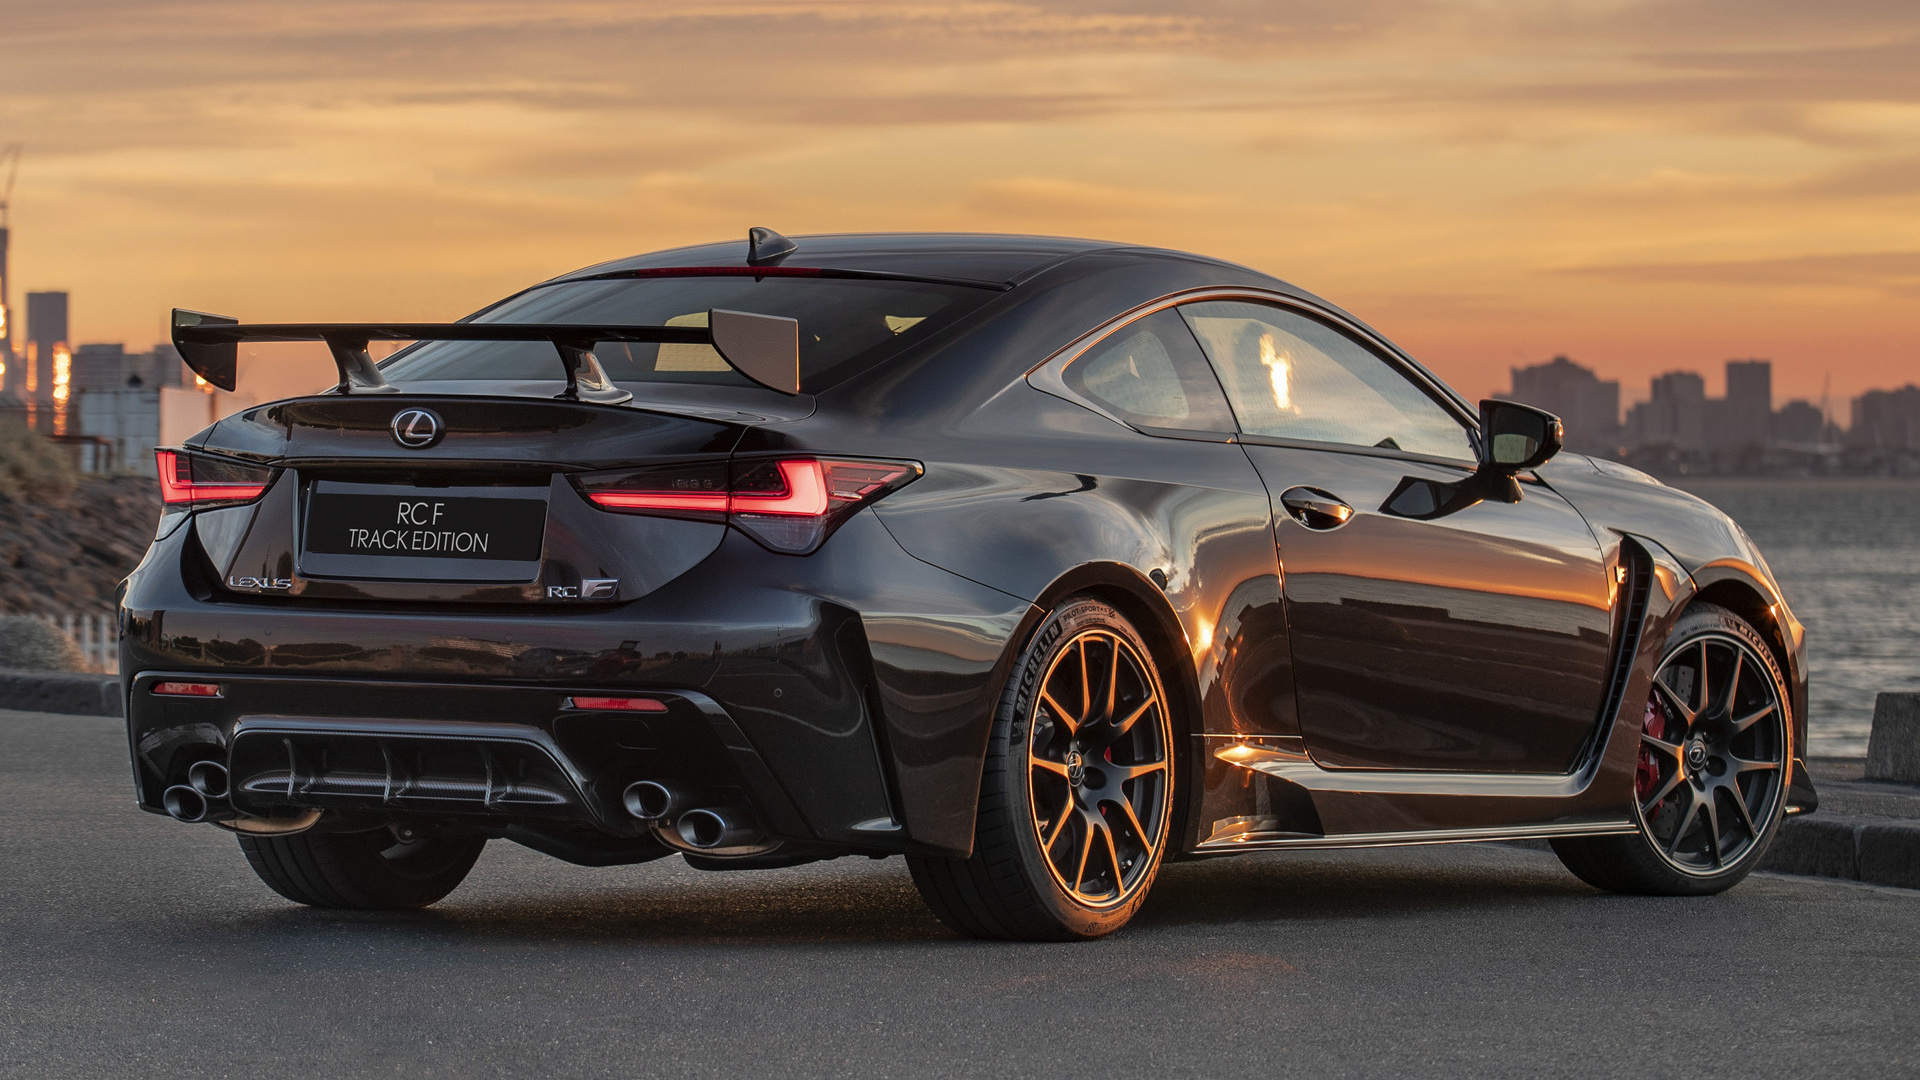 Lexus F Sport >> 2019 Lexus RC F Track Edition (AU) - Wallpapers and HD ...